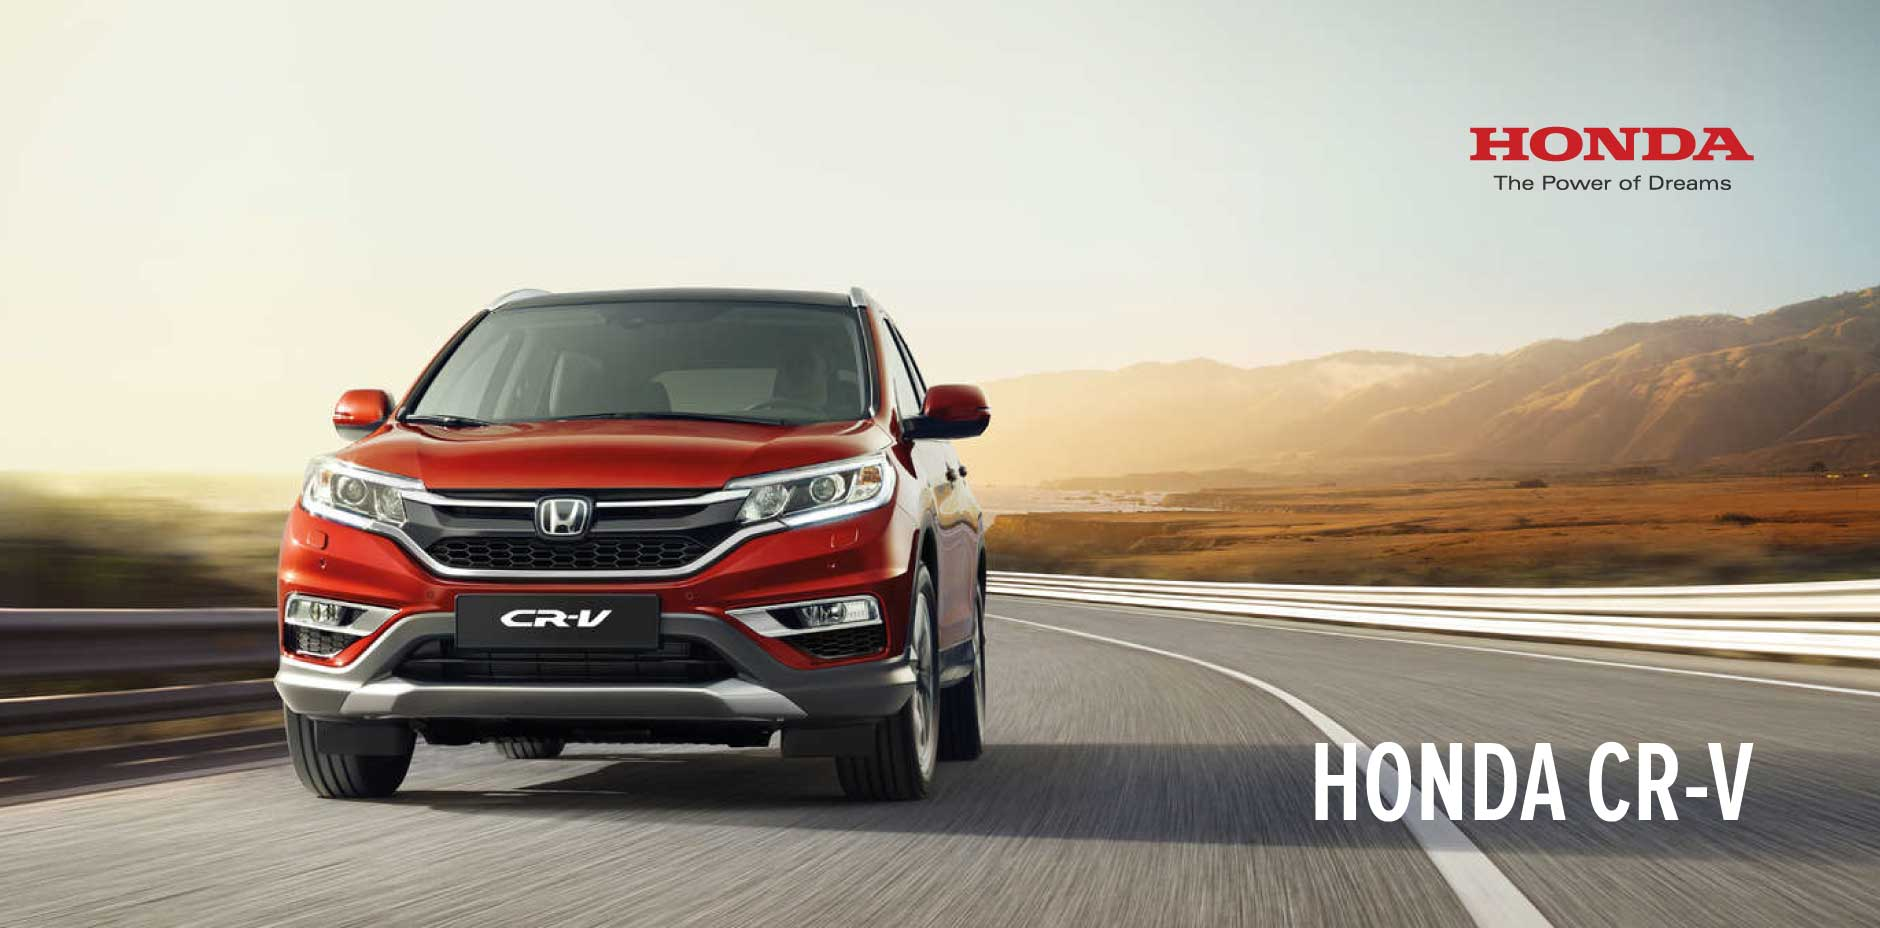 Introducing the Honda CR-V